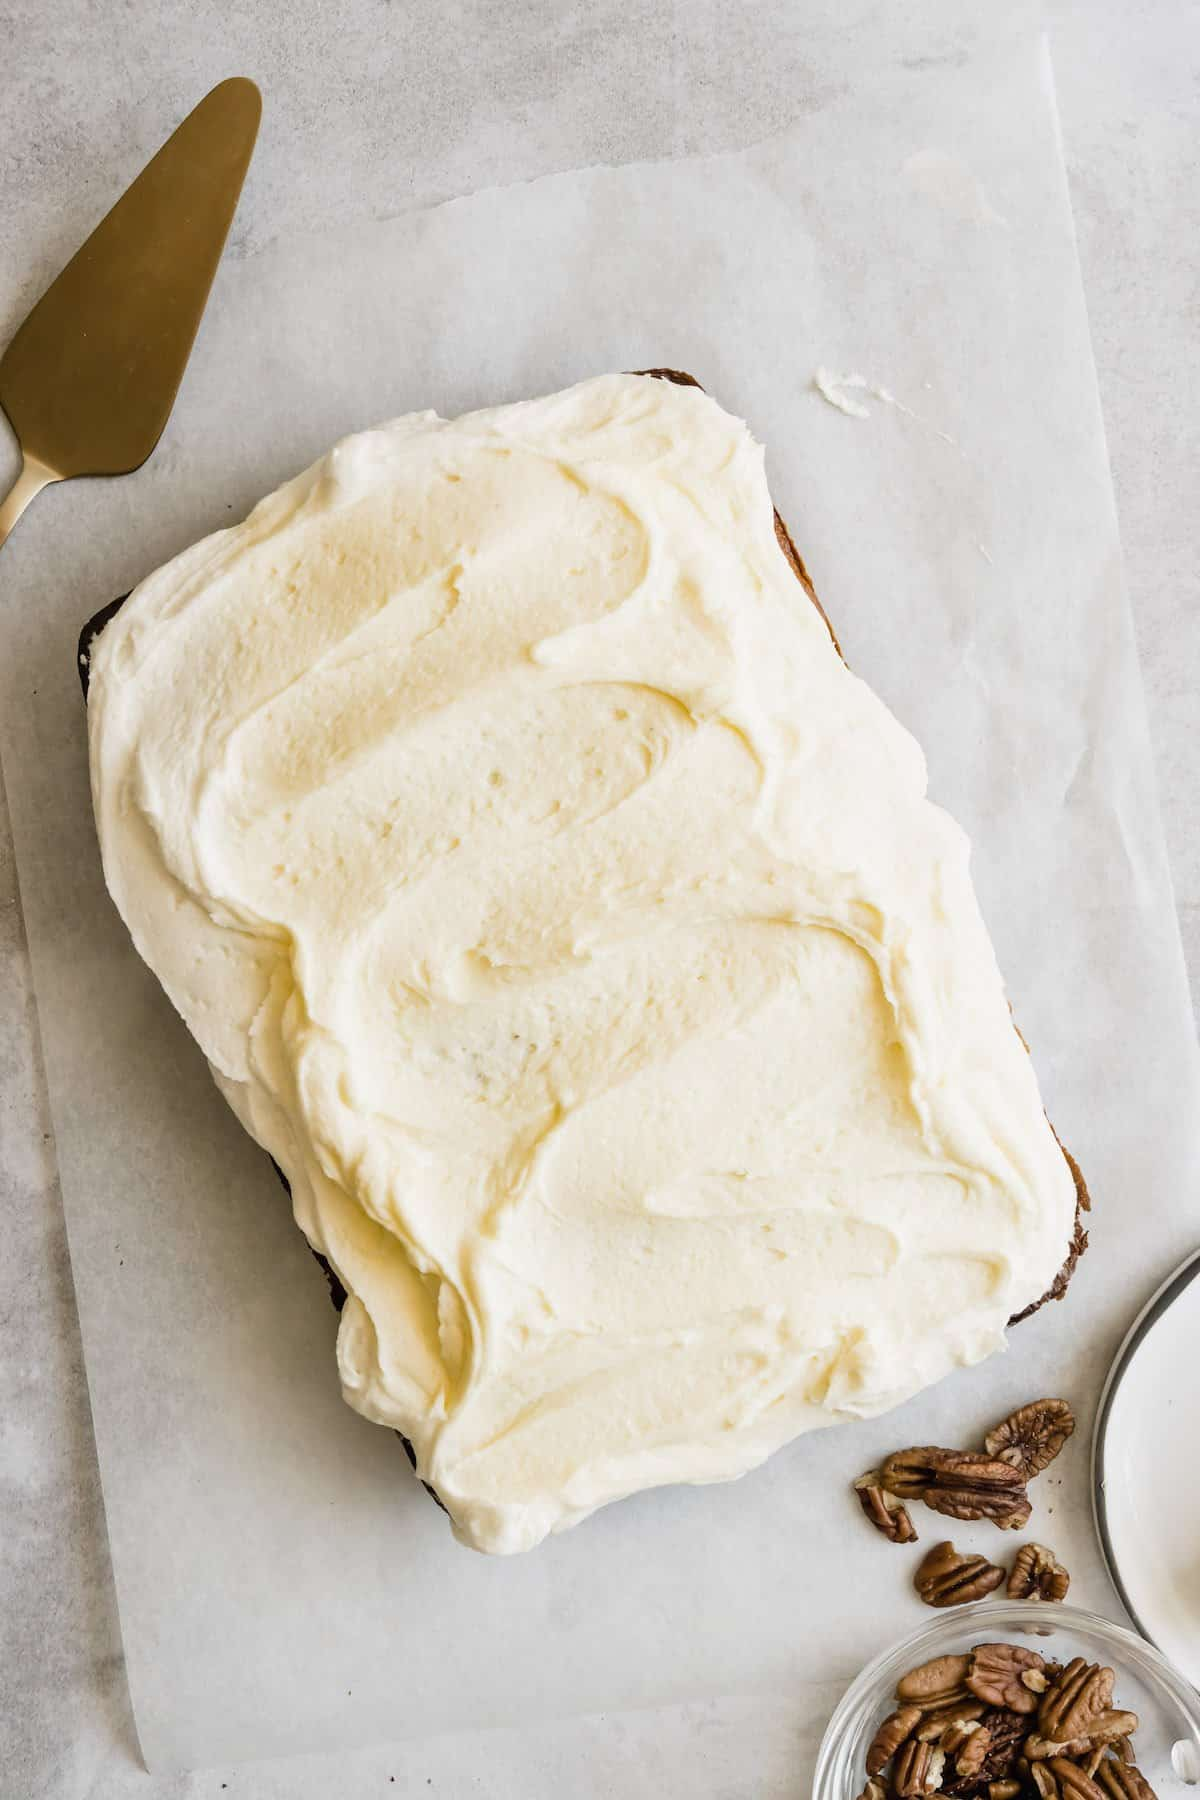 A whole frosted banana cake.